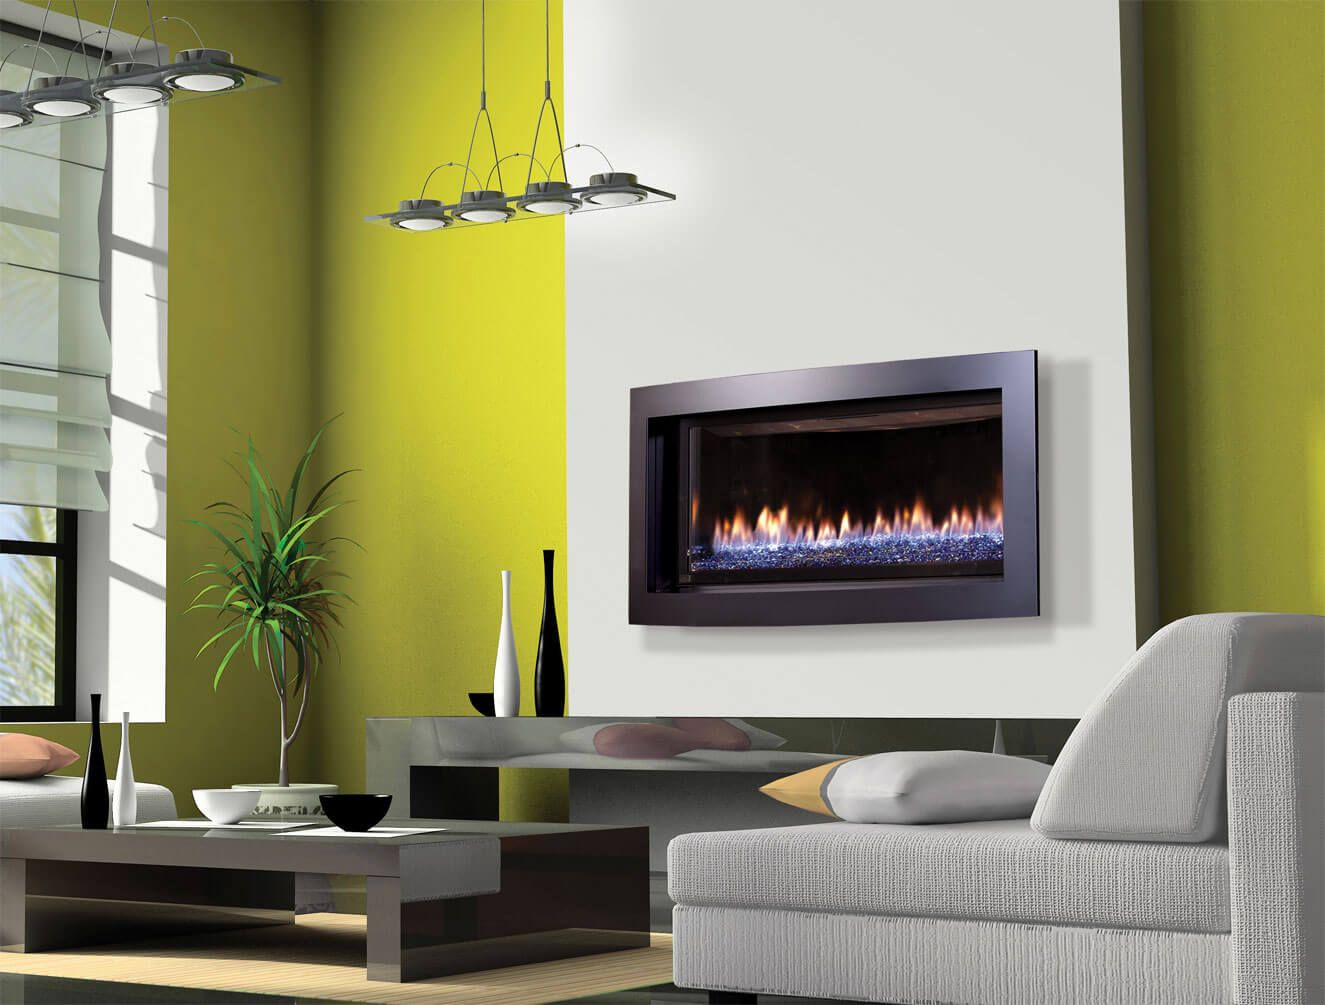 To Turn Off The Gas Fireplace Pilot Light In 2020 Contemporary